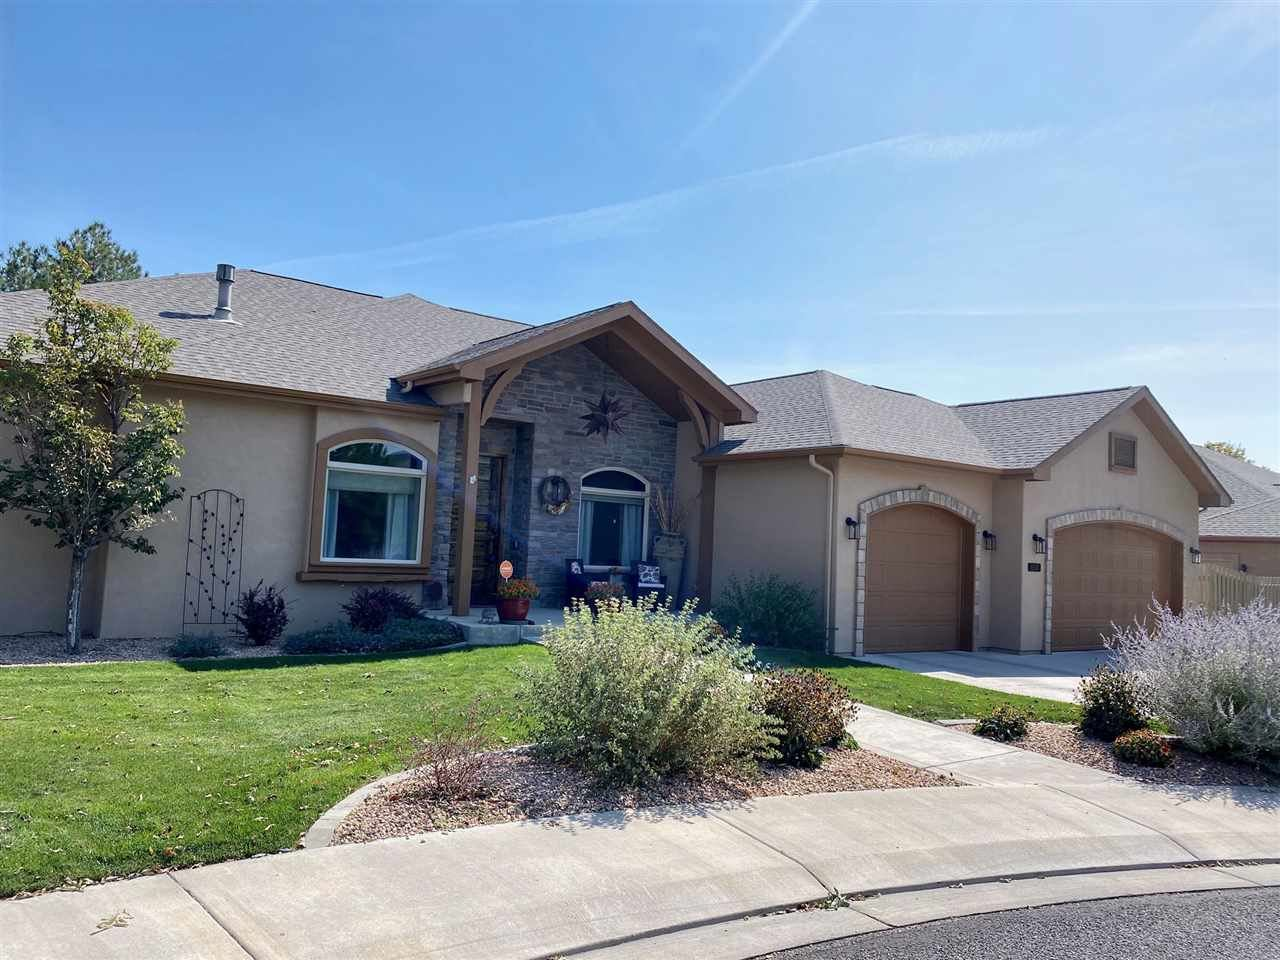 Photo of 3530 Woodgate Drive, Grand Junction, CO 81506 (MLS # 20204796)